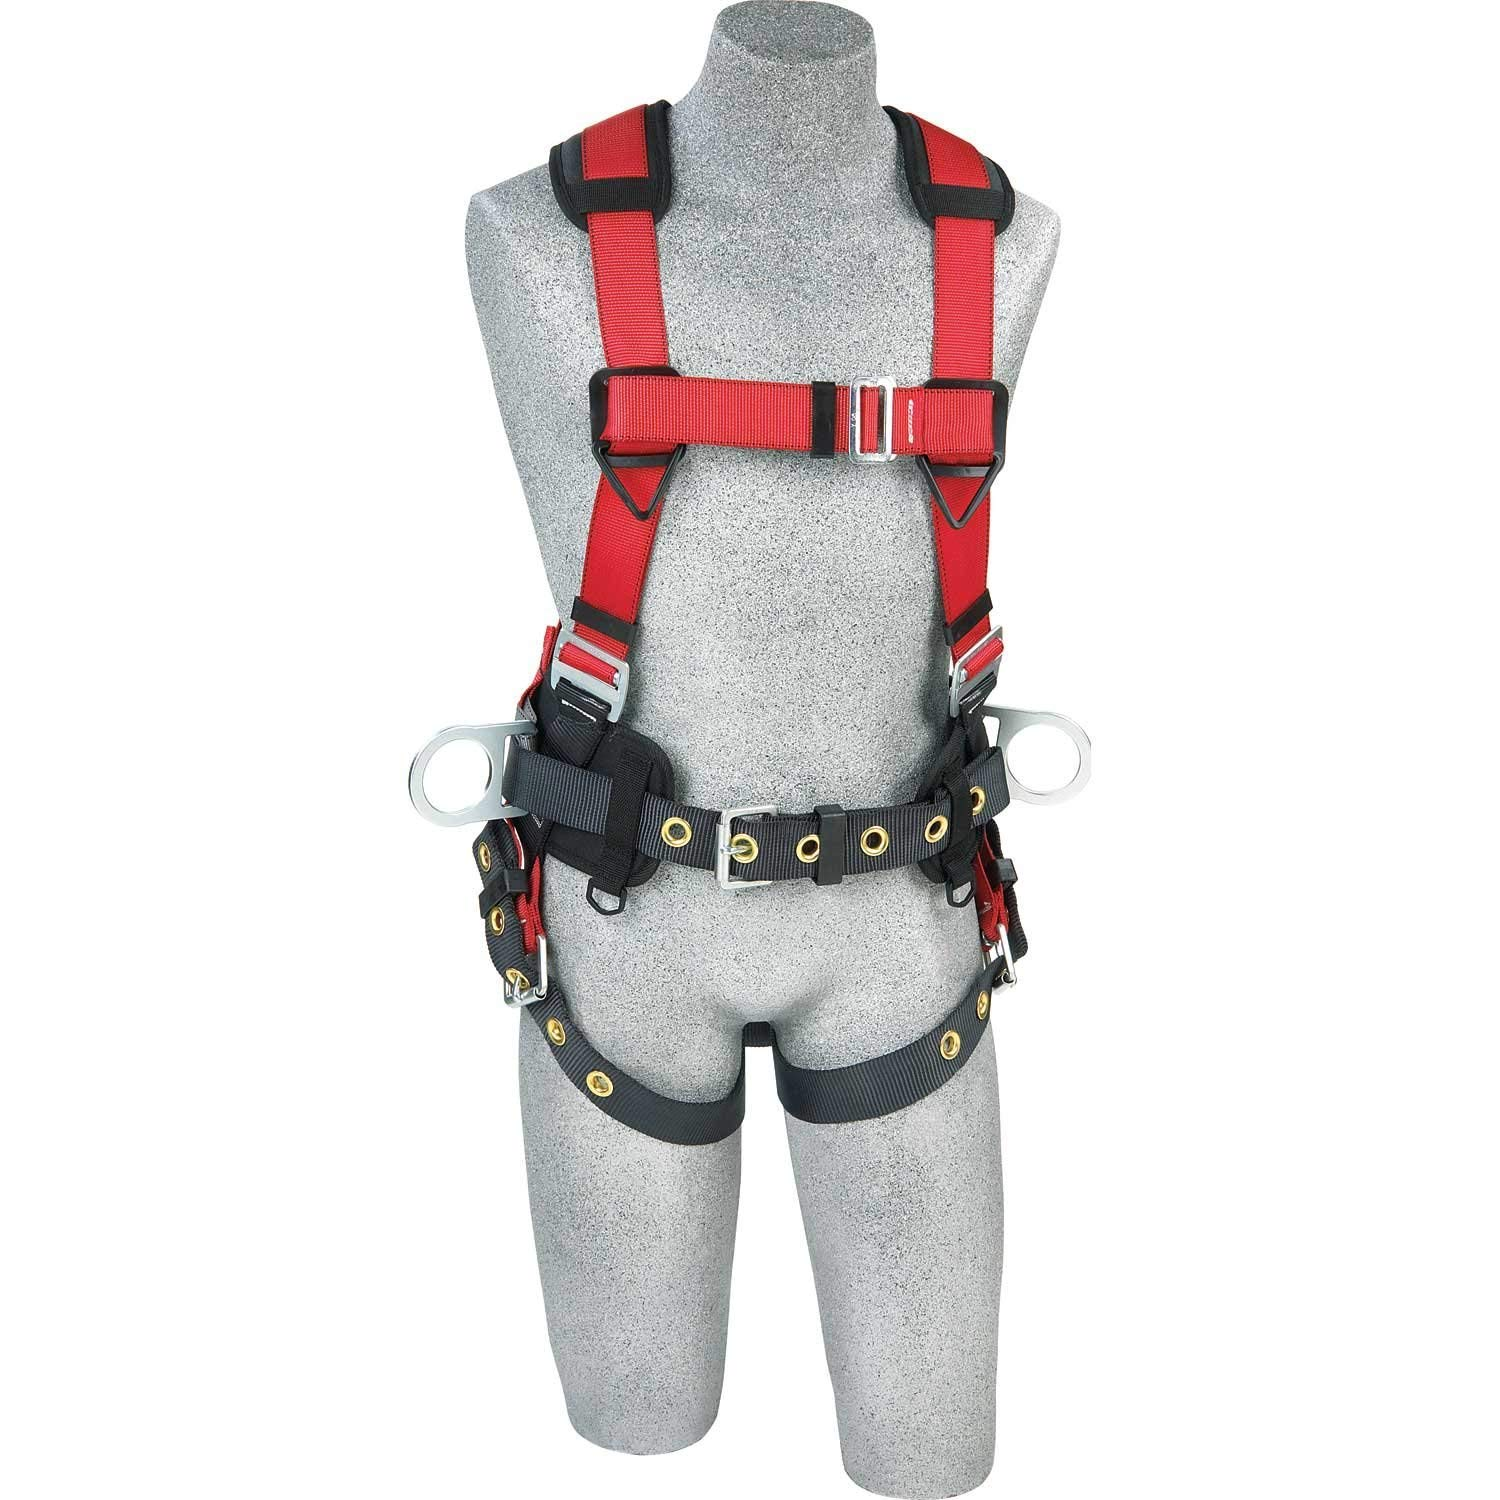 Protecta 1191210 ''Pro Line'' Construction Vest Style Full Body Harness, Extra Large, Red/Gray/Black